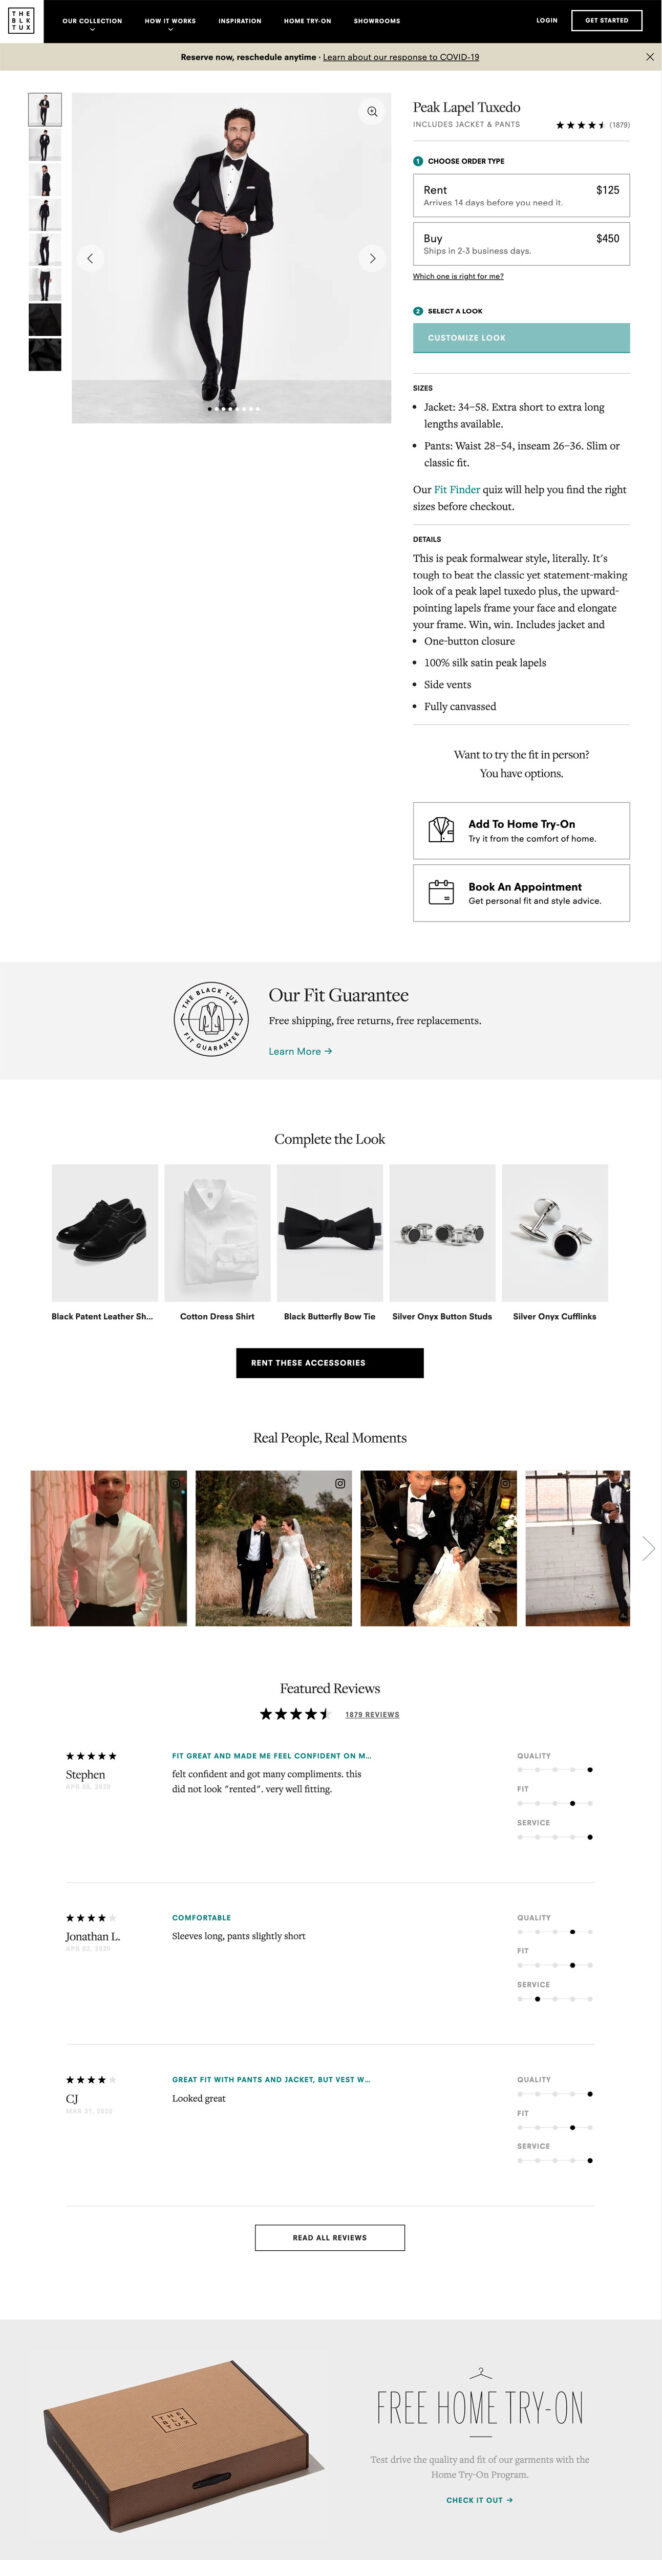 The product page on The Black Tux.